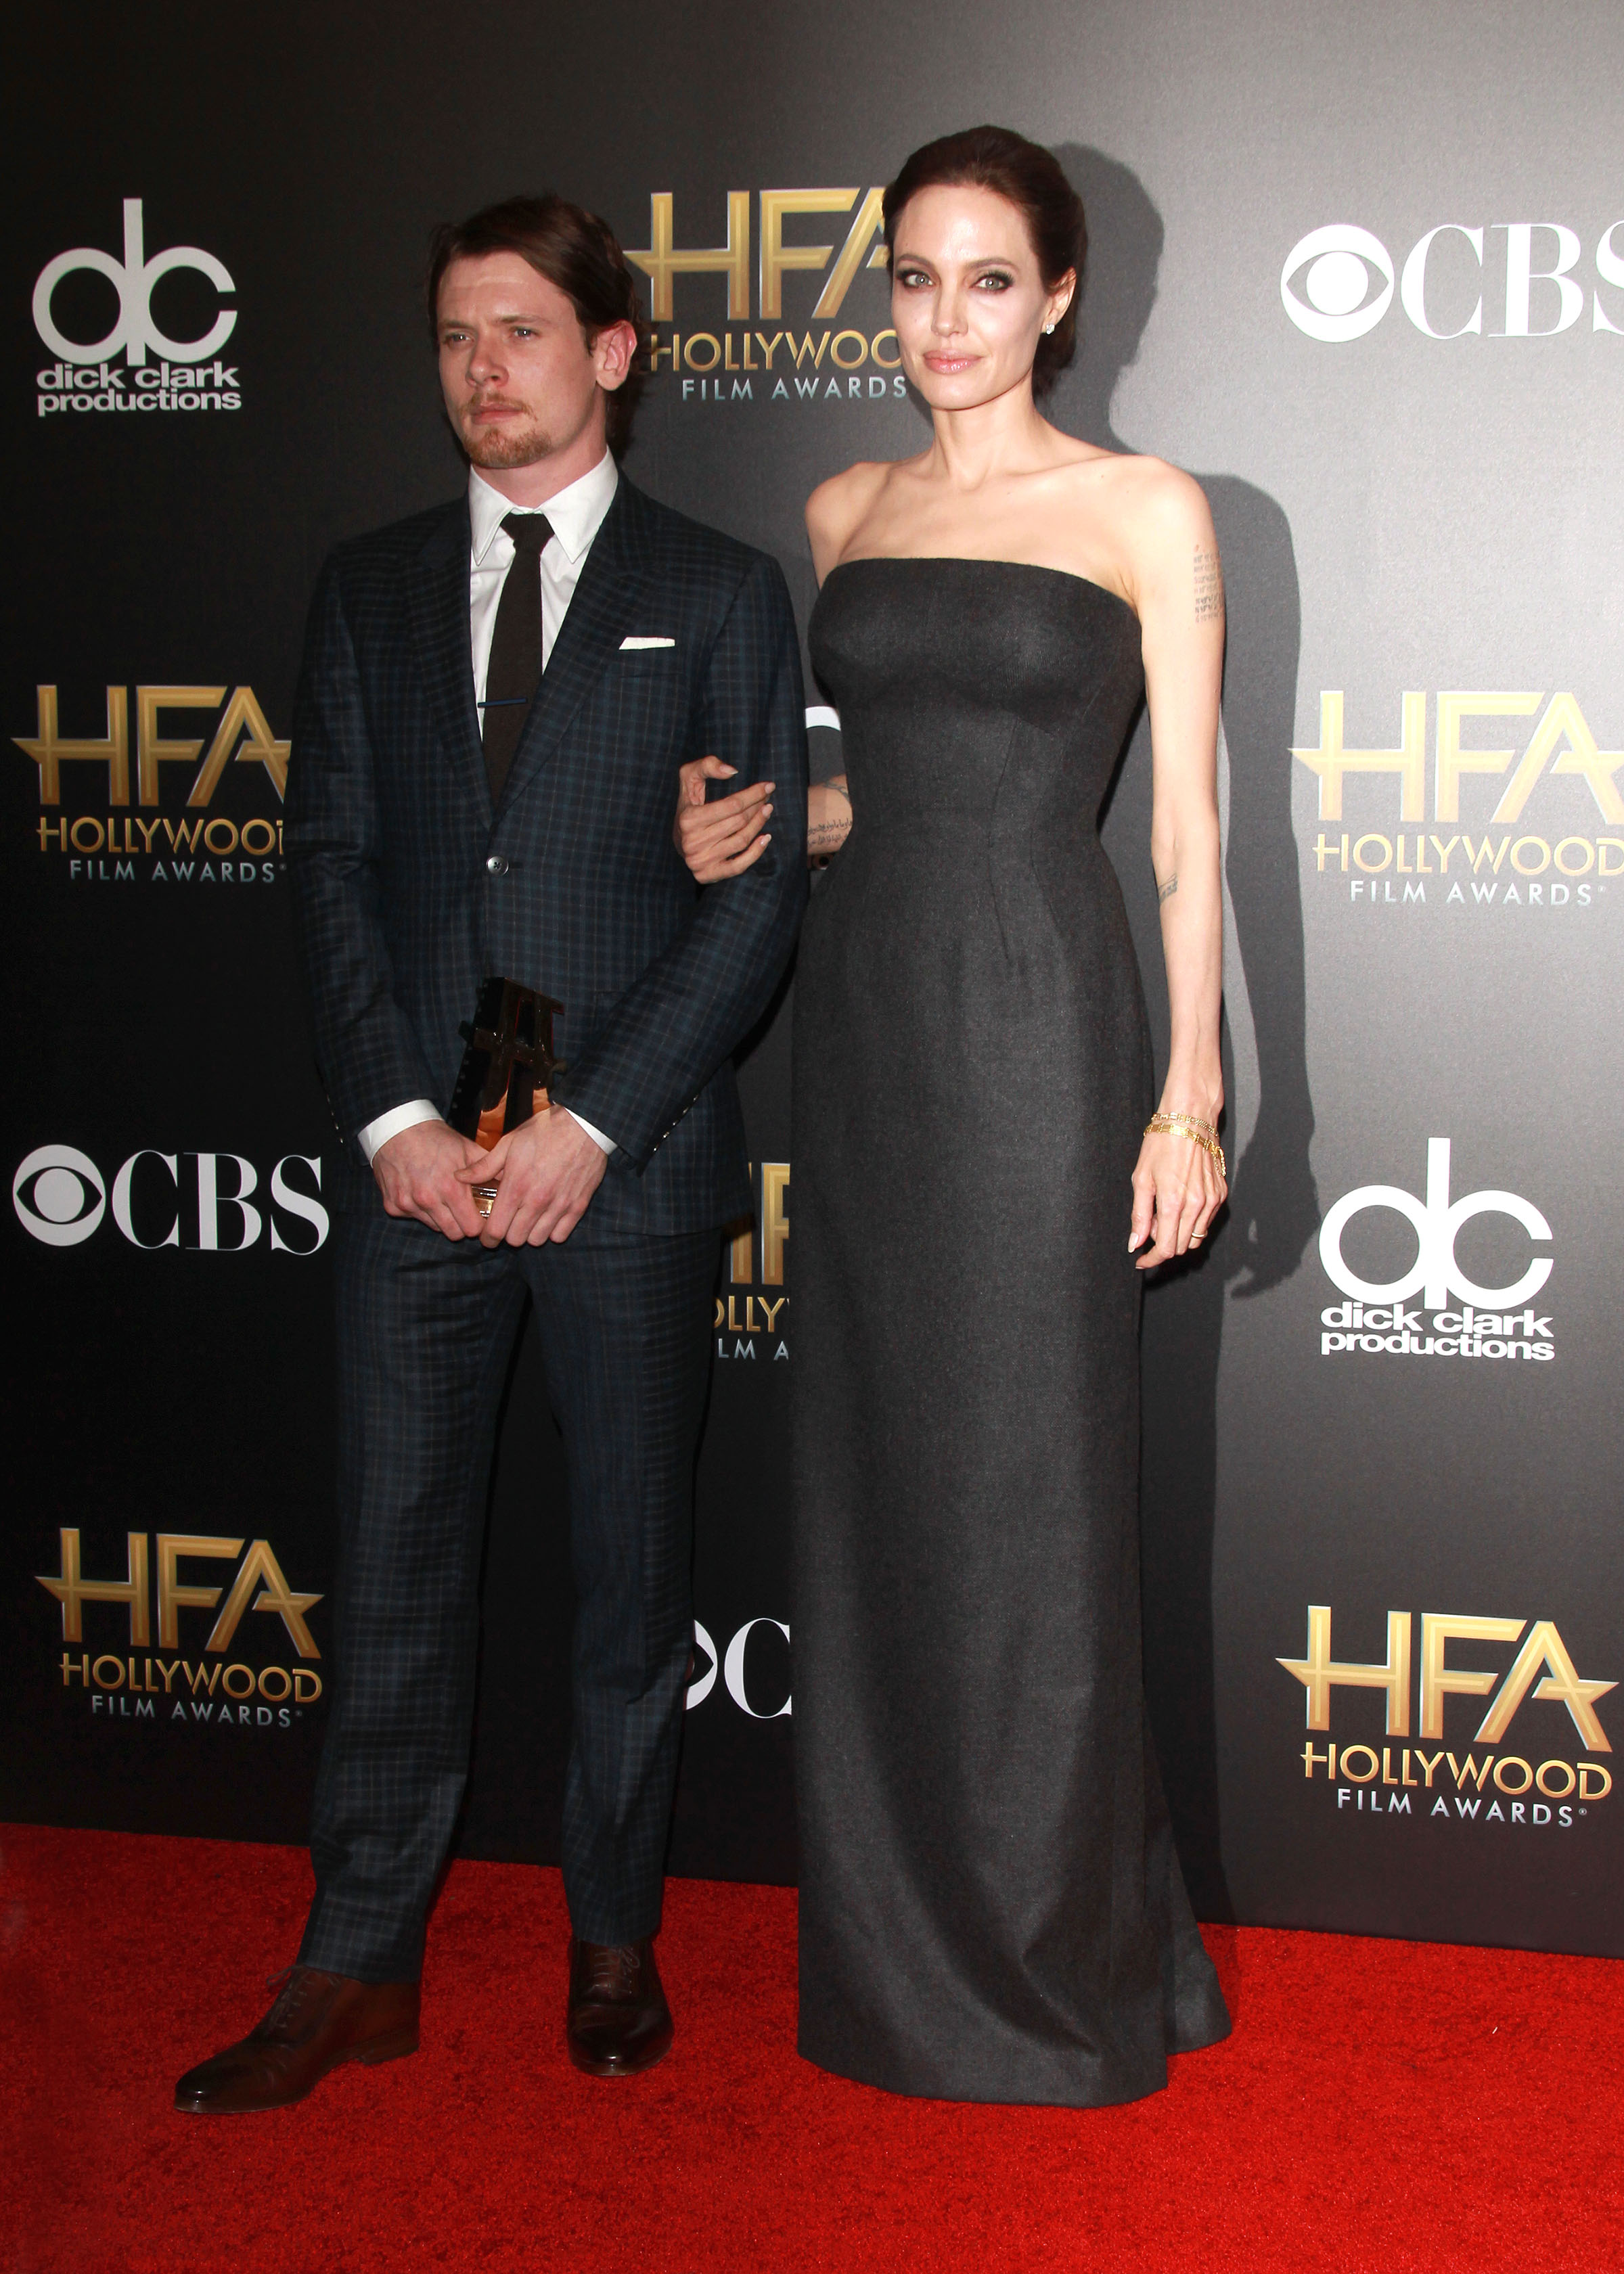 Hollywood Film Awards Fug or Fab: Angelina Jolie in Versace